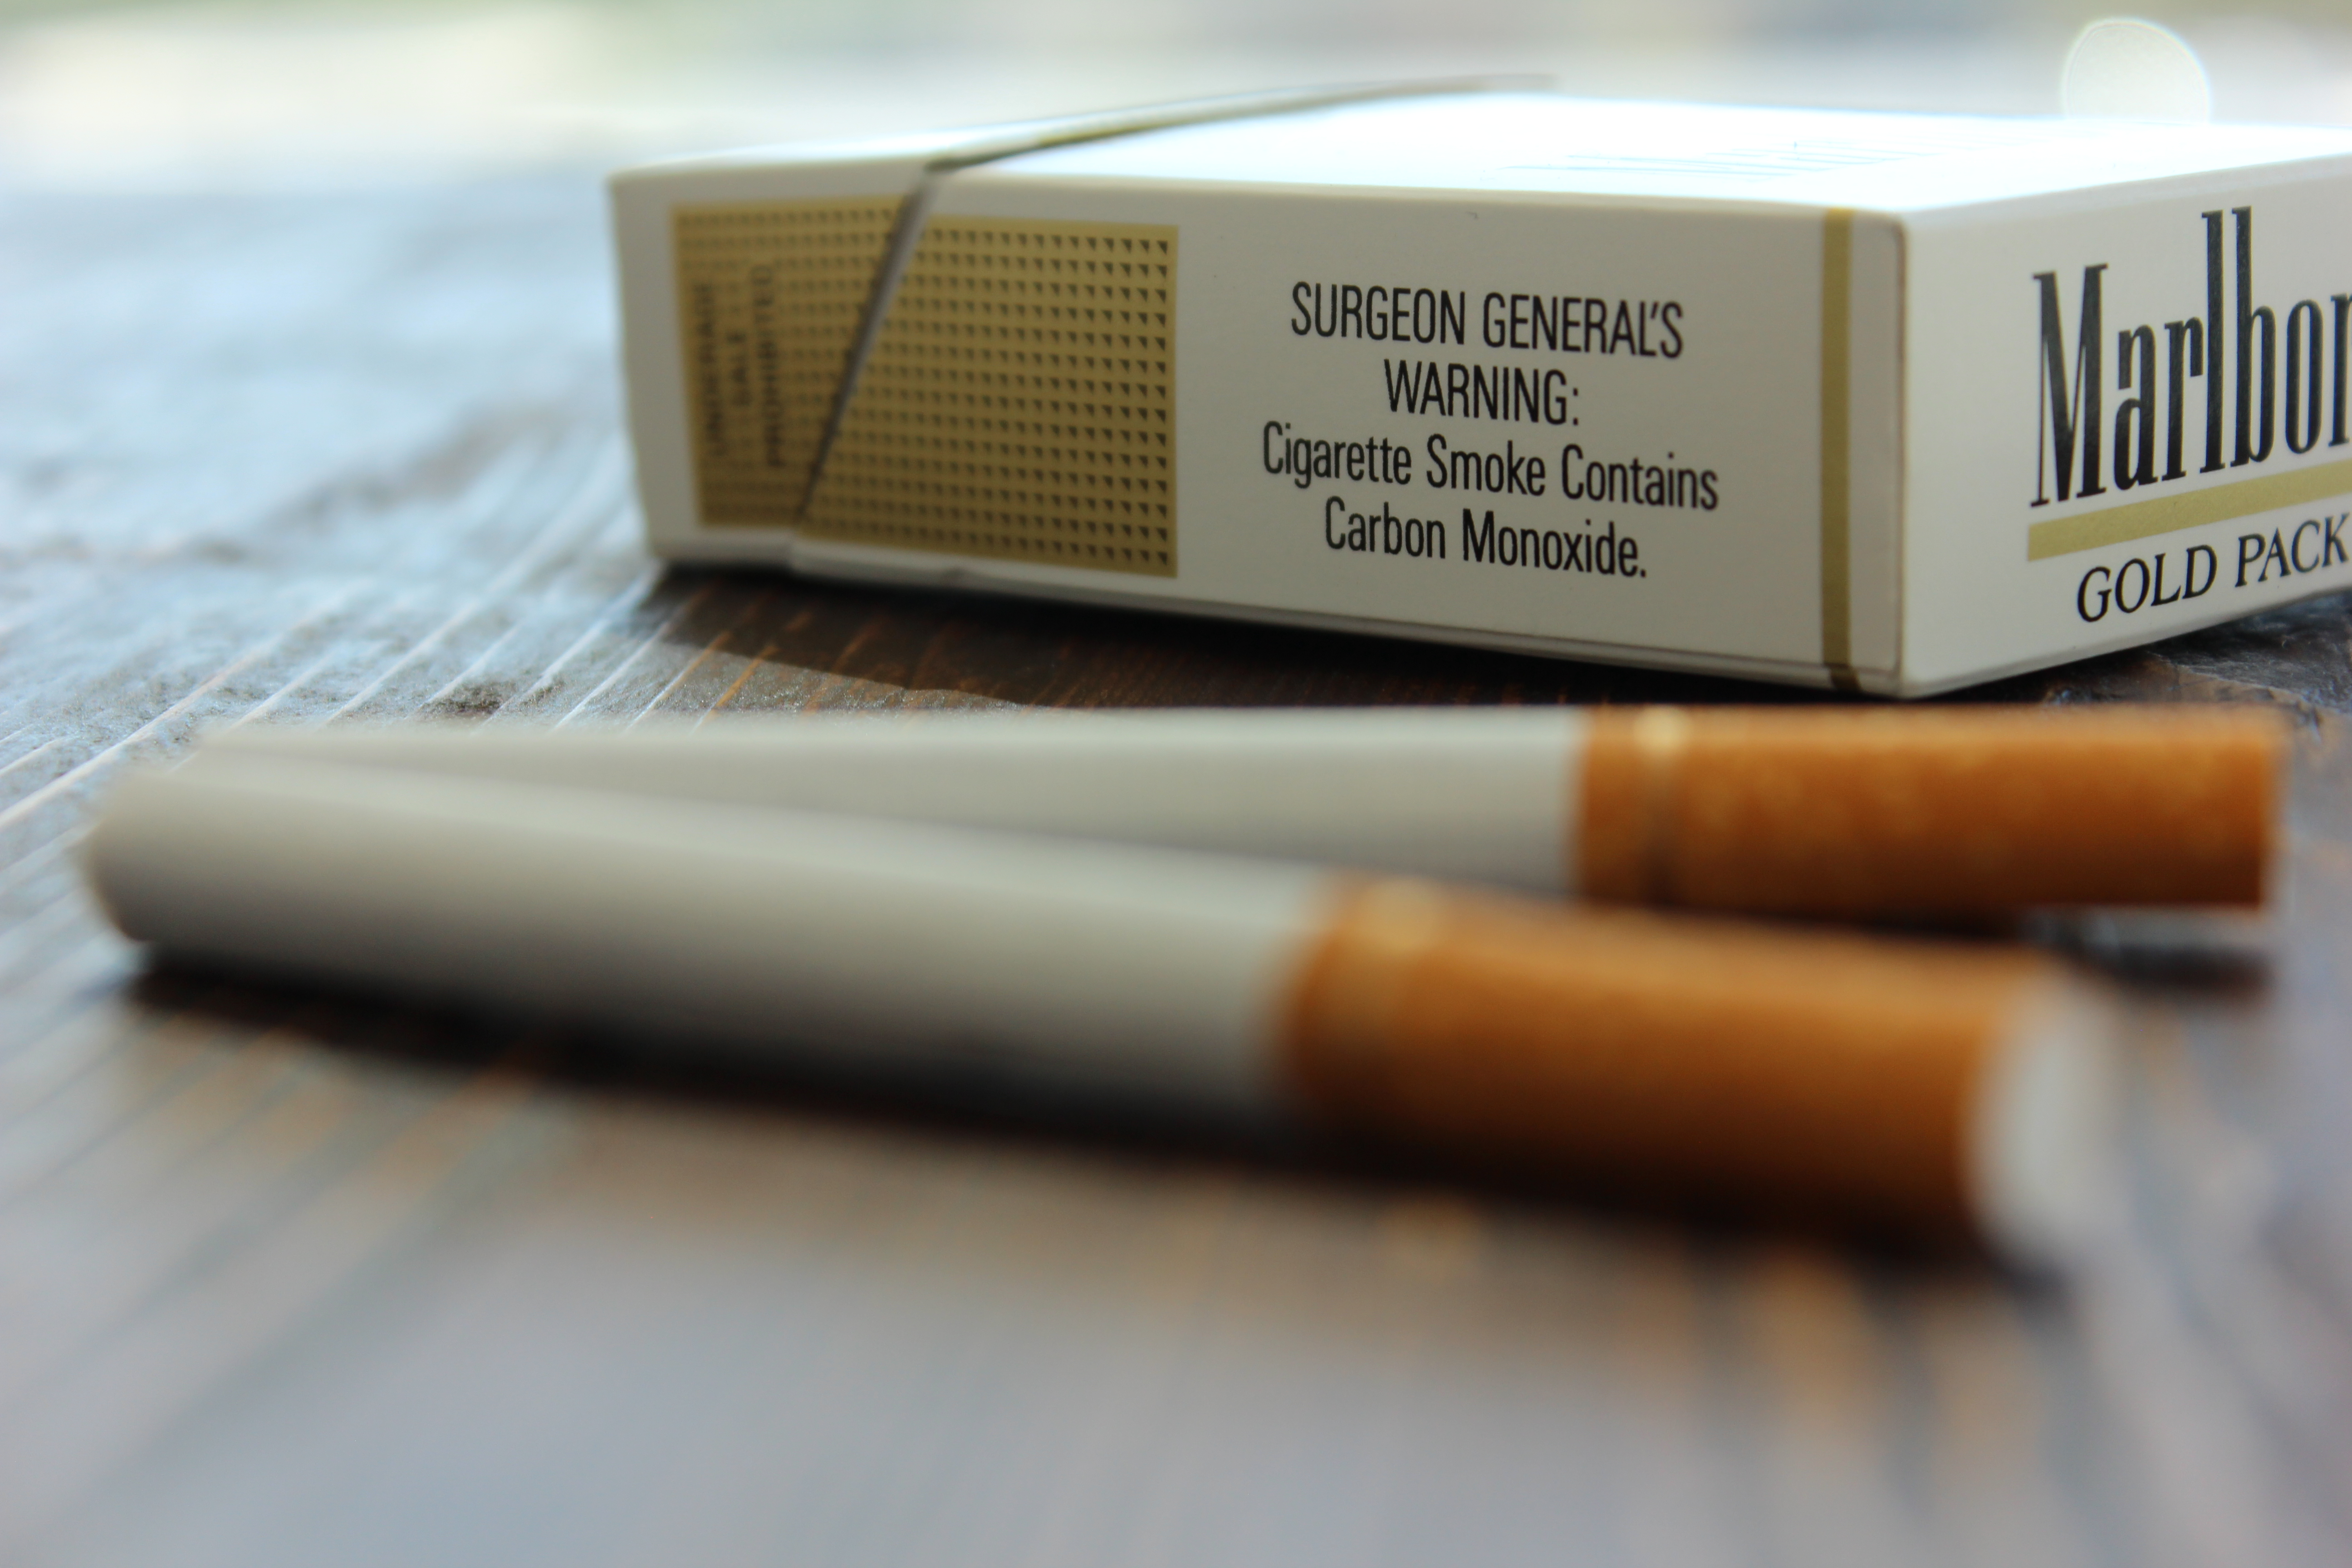 Fathers Nicotine Use Can Cause >> Does A Father S Smoking Affect His Baby New Study Shows Changes In